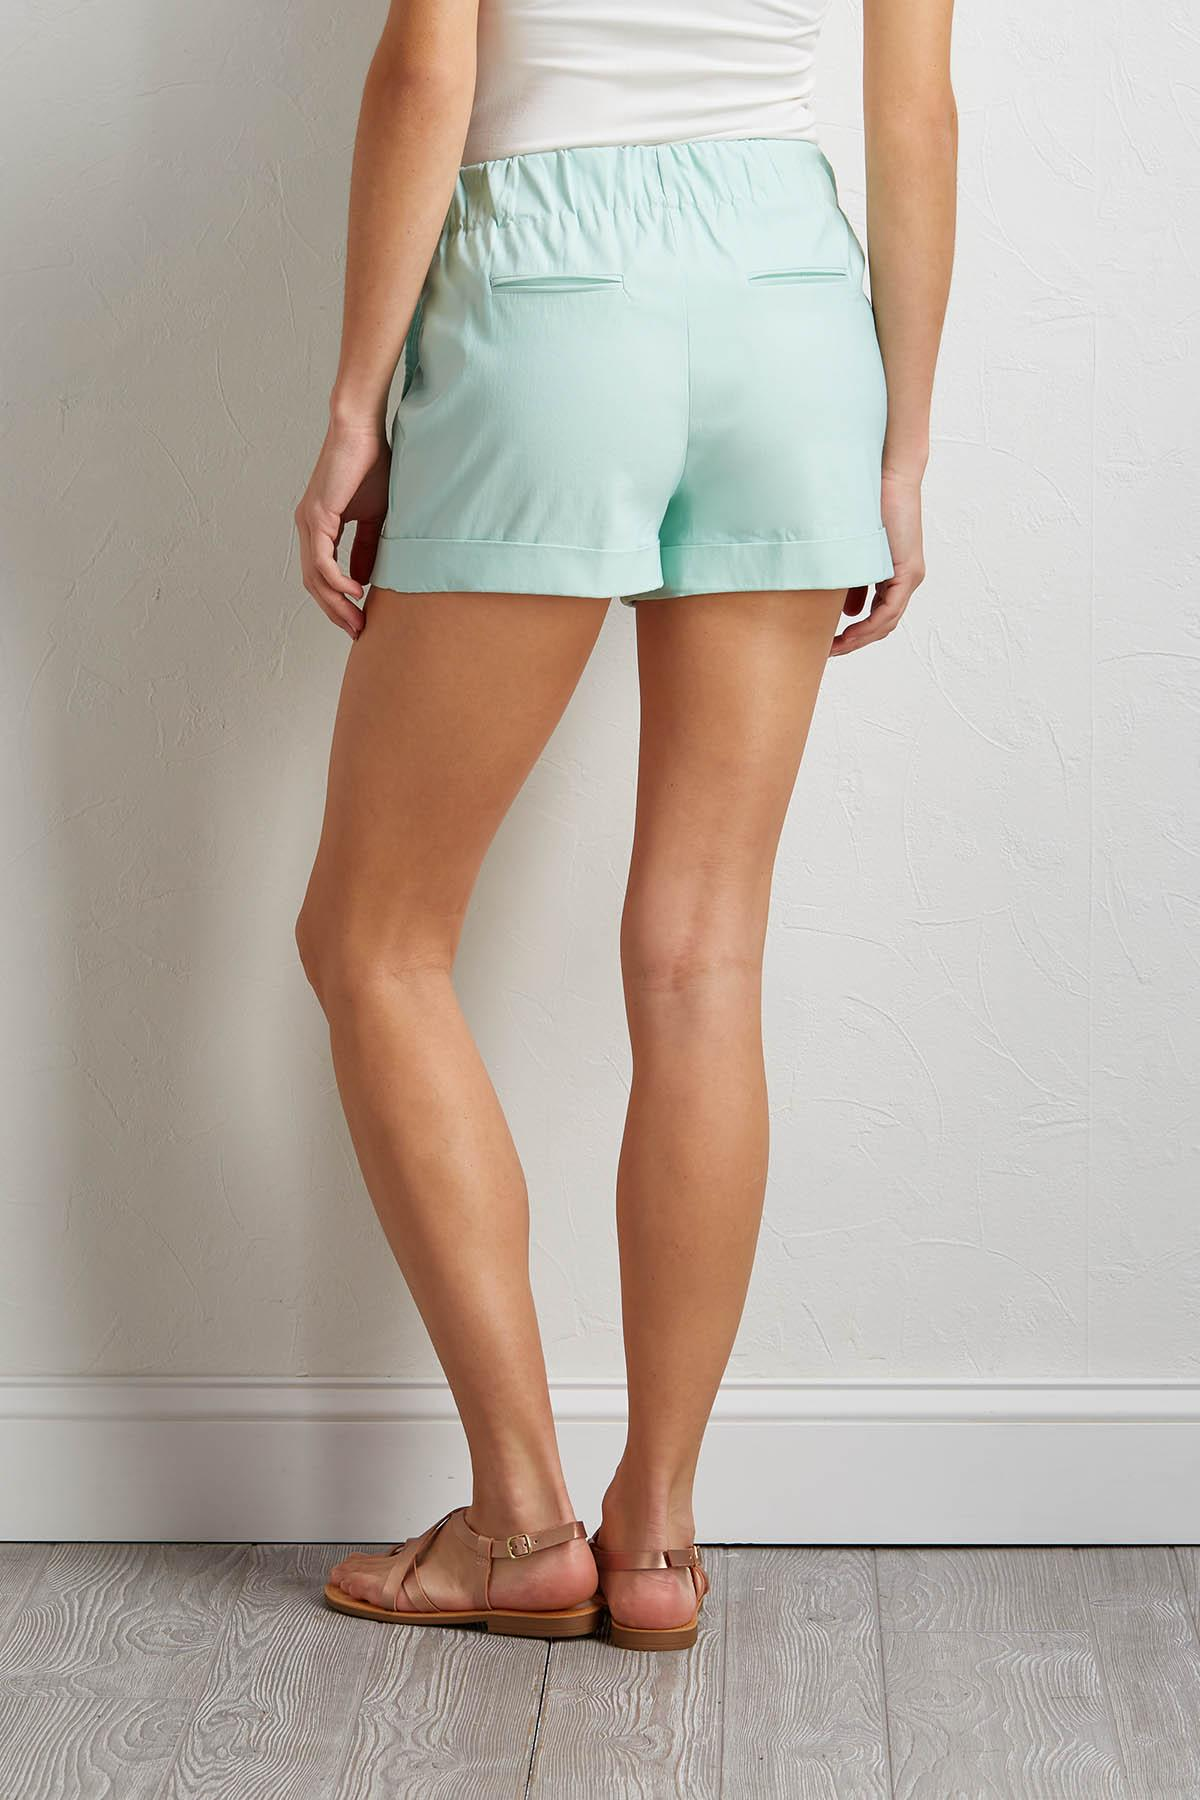 Cuffed Mint Shorts